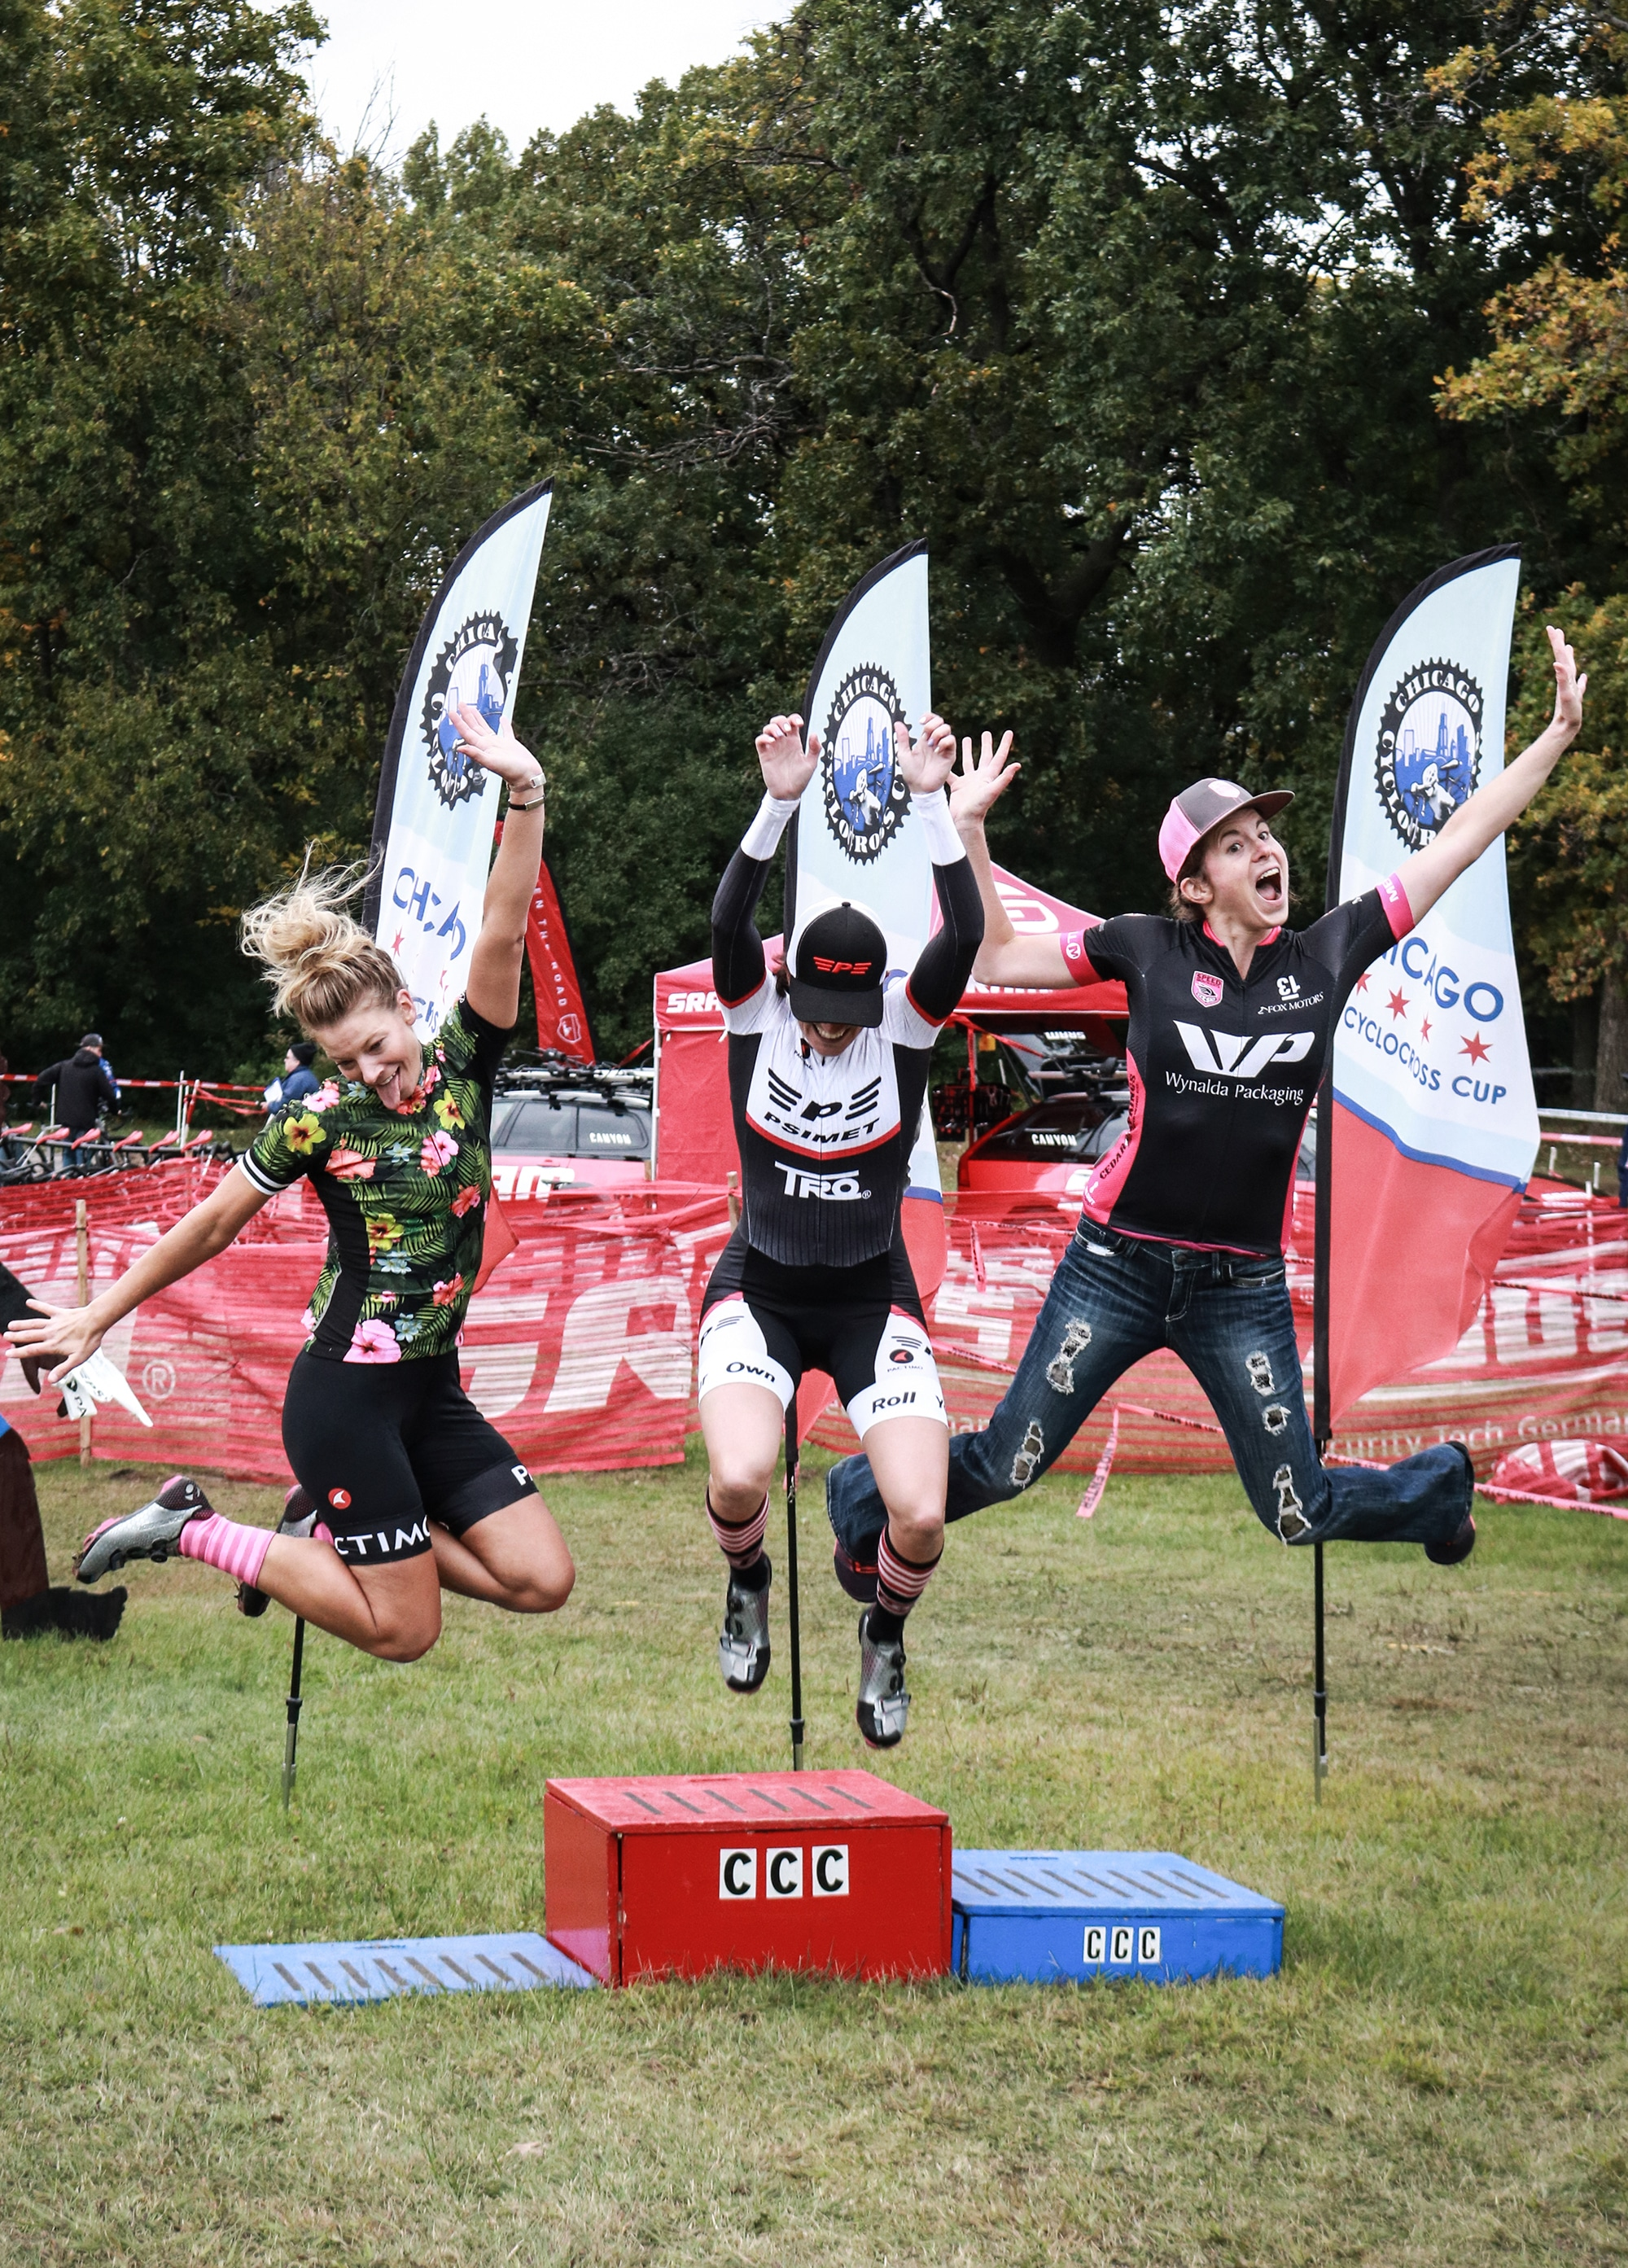 Women jumping from podium